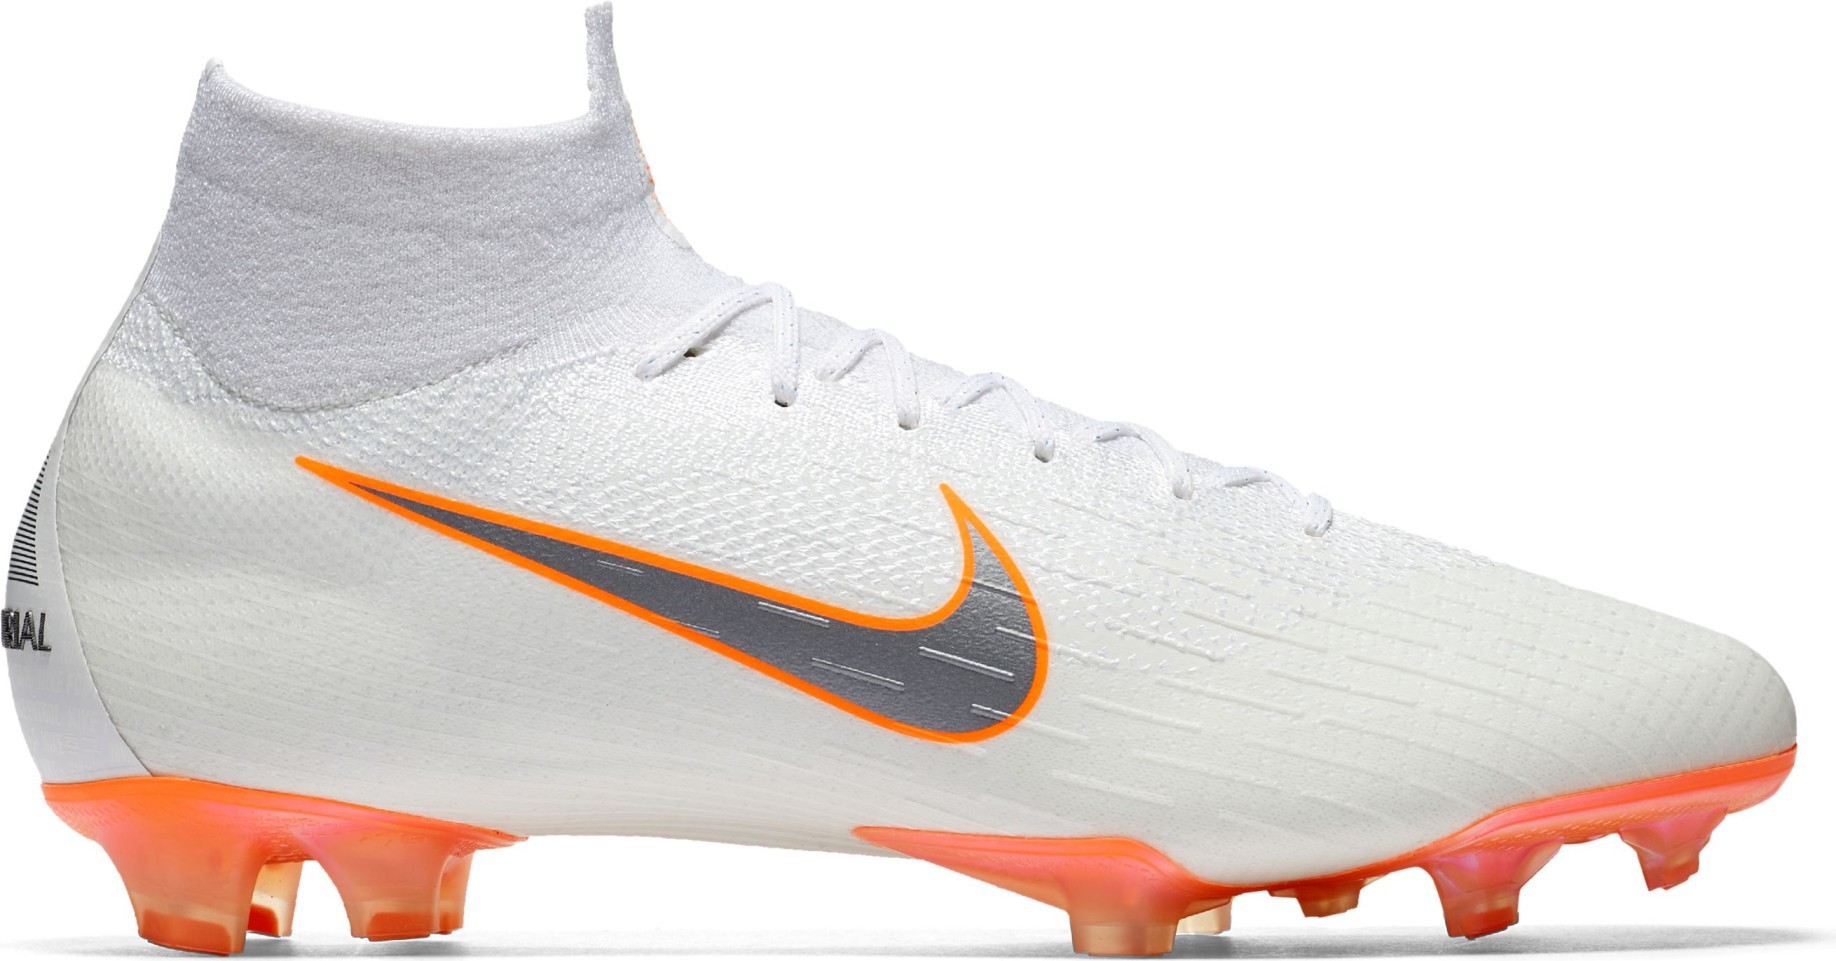 hot sale online ea252 f8c85 Football boots Nike Mercurial Superfly 360 Elite DF FG Just Do It Pack